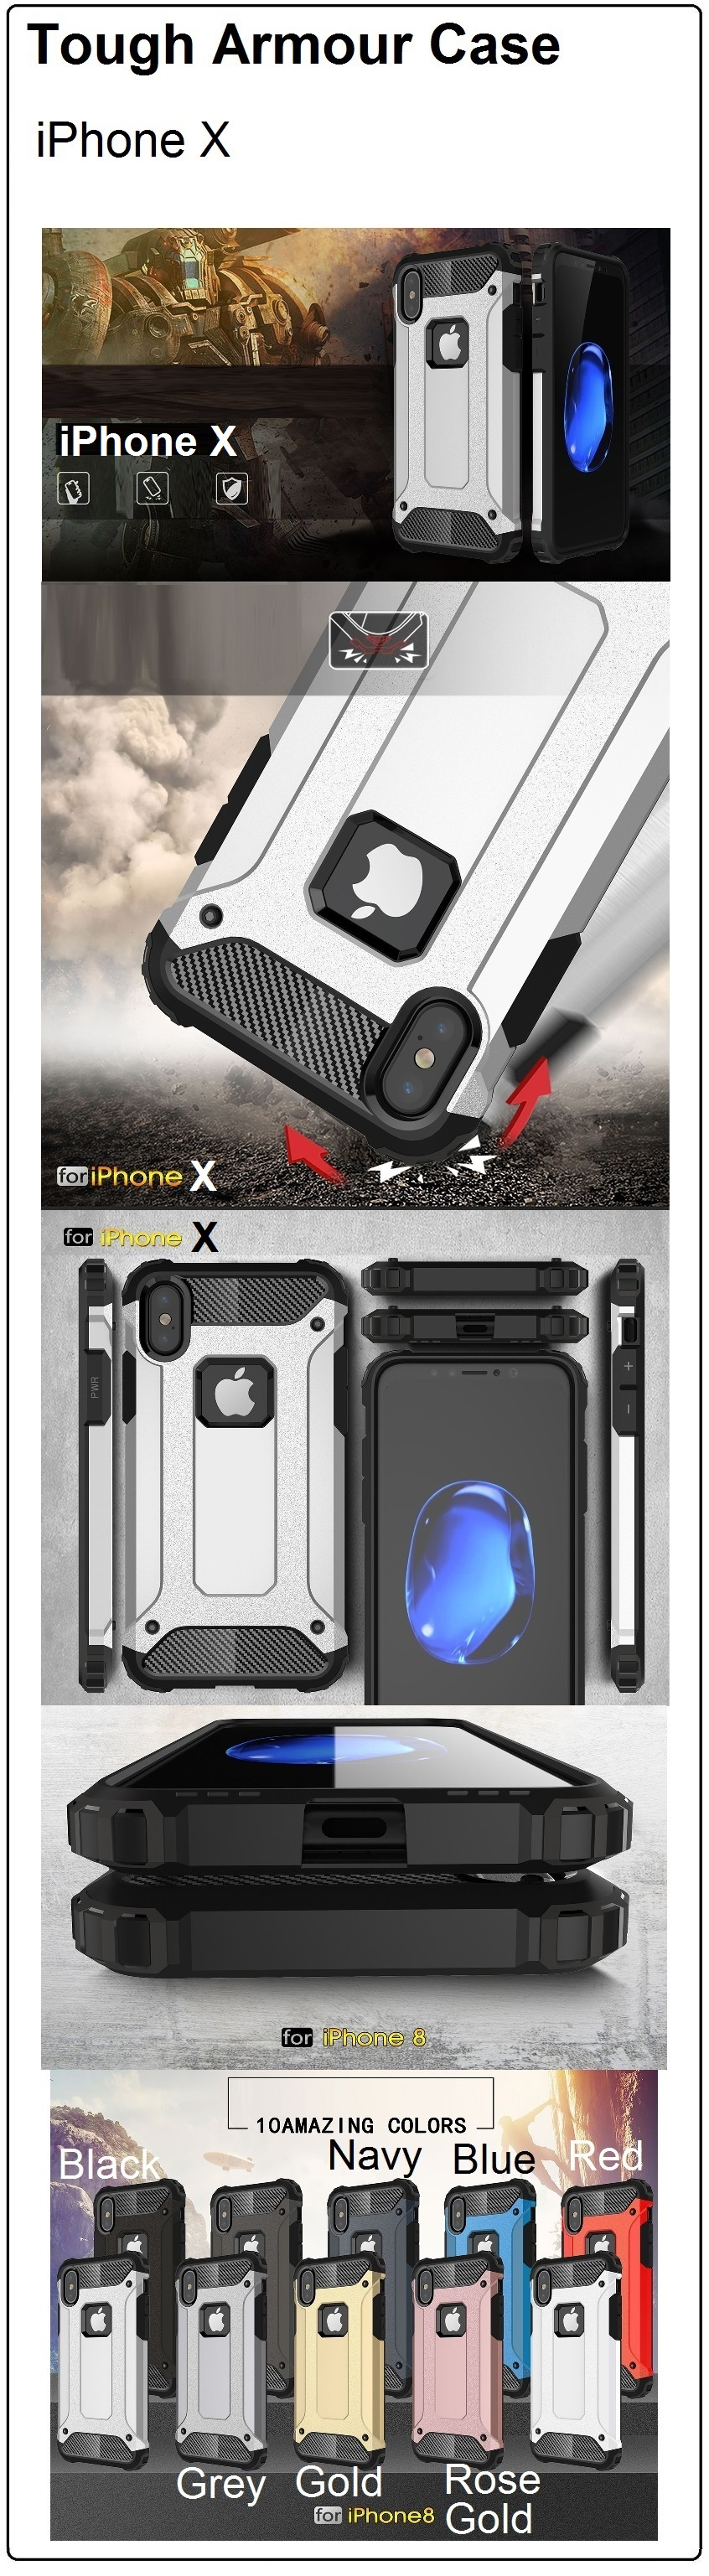 Buy Iphone X 8 Plus 7 Case 6 6s Goospery New Bumper Gold Purchase Of Any Casing From Our Store Comes With A Free Piece Screen Protector Worth 499